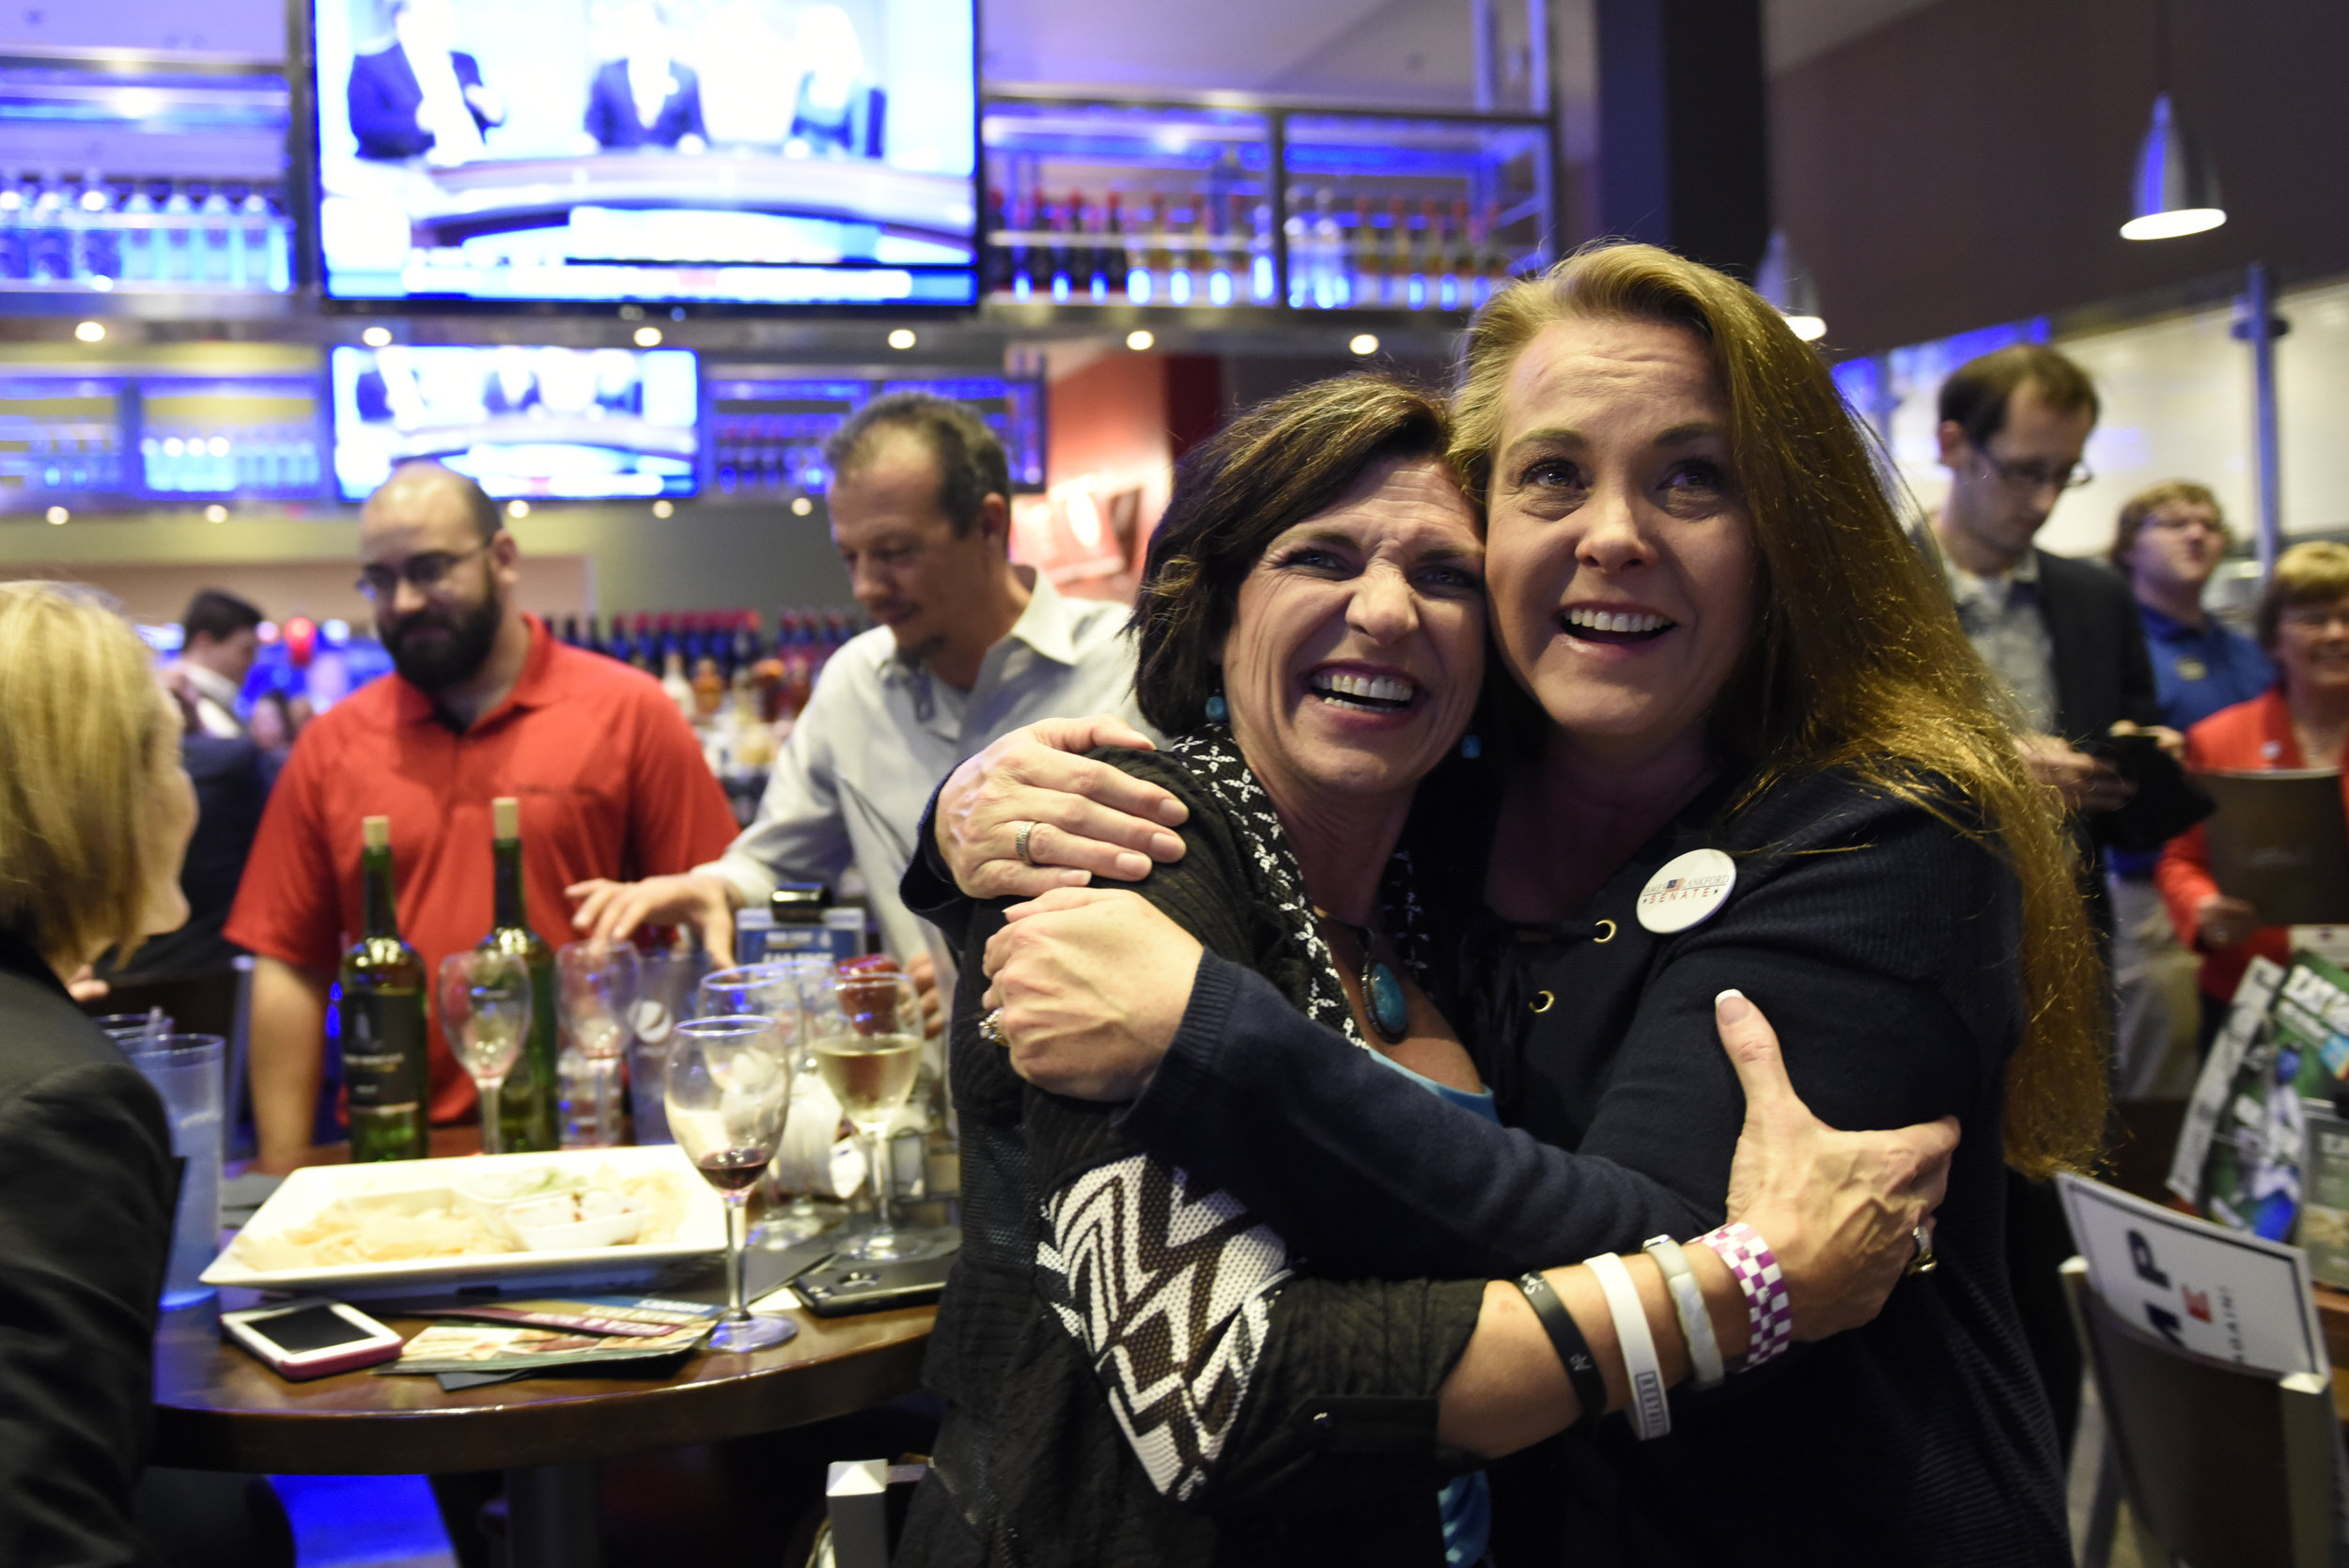 Chandra Ford (L) and Tempe Perreira celebrate as Republican presidential nominee Donald Trump is announced the winner of Ohio at the Oklahoma GOP watch party in Oklahoma City, Oklahoma, U.S. November 8, 2016.  REUTERS/Nick Oxford